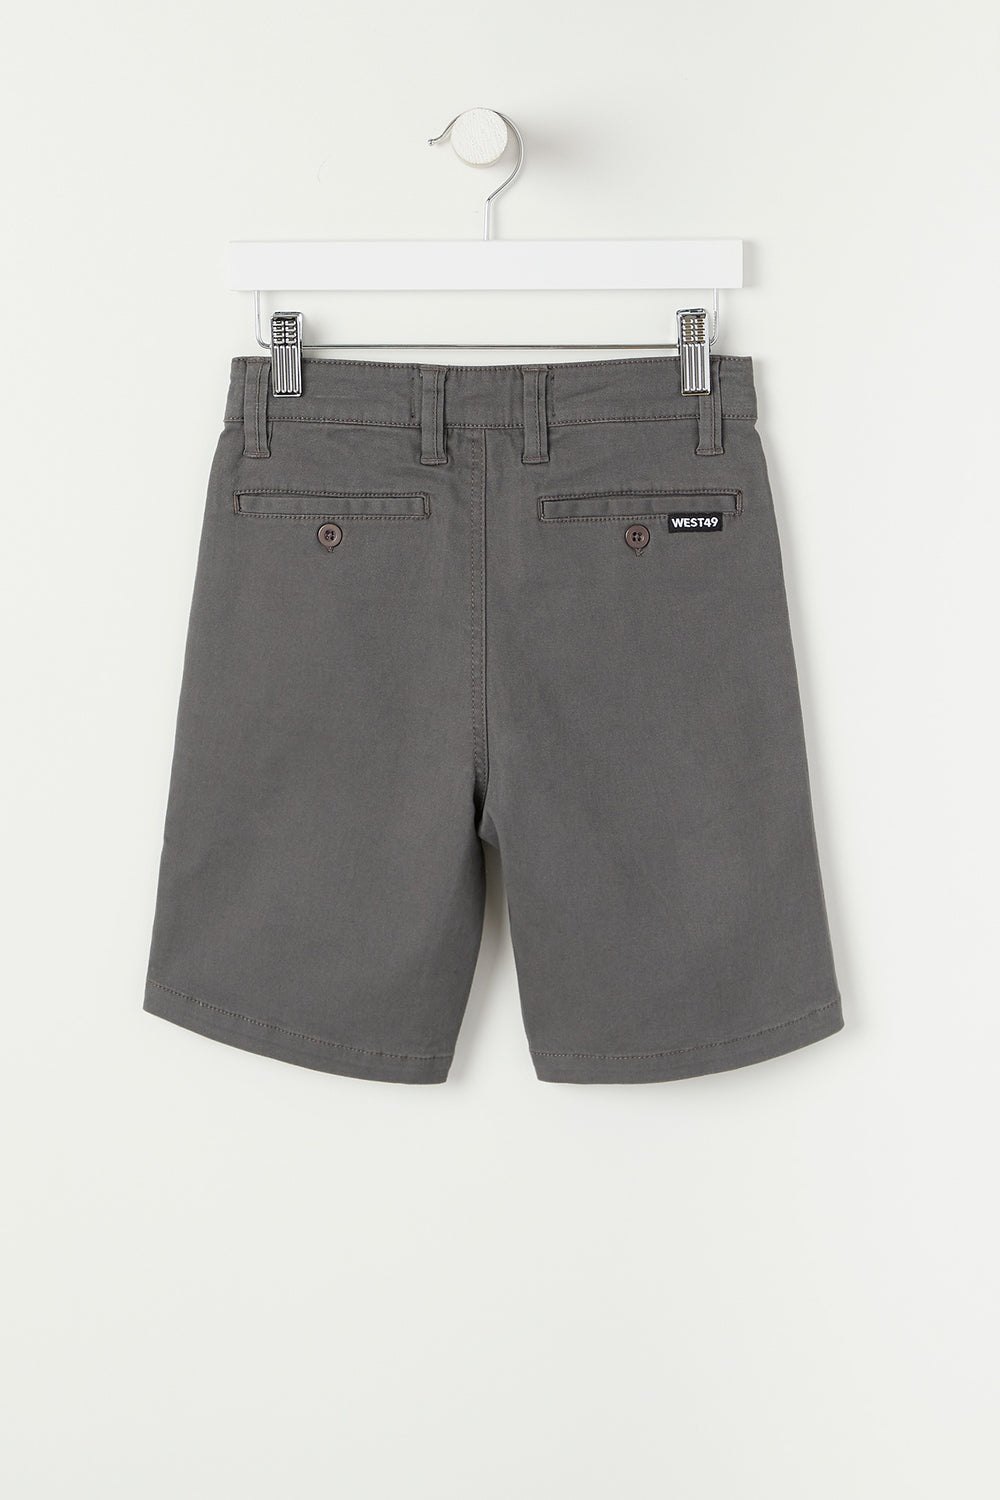 West49 Youth Twill Street Short Dark Grey